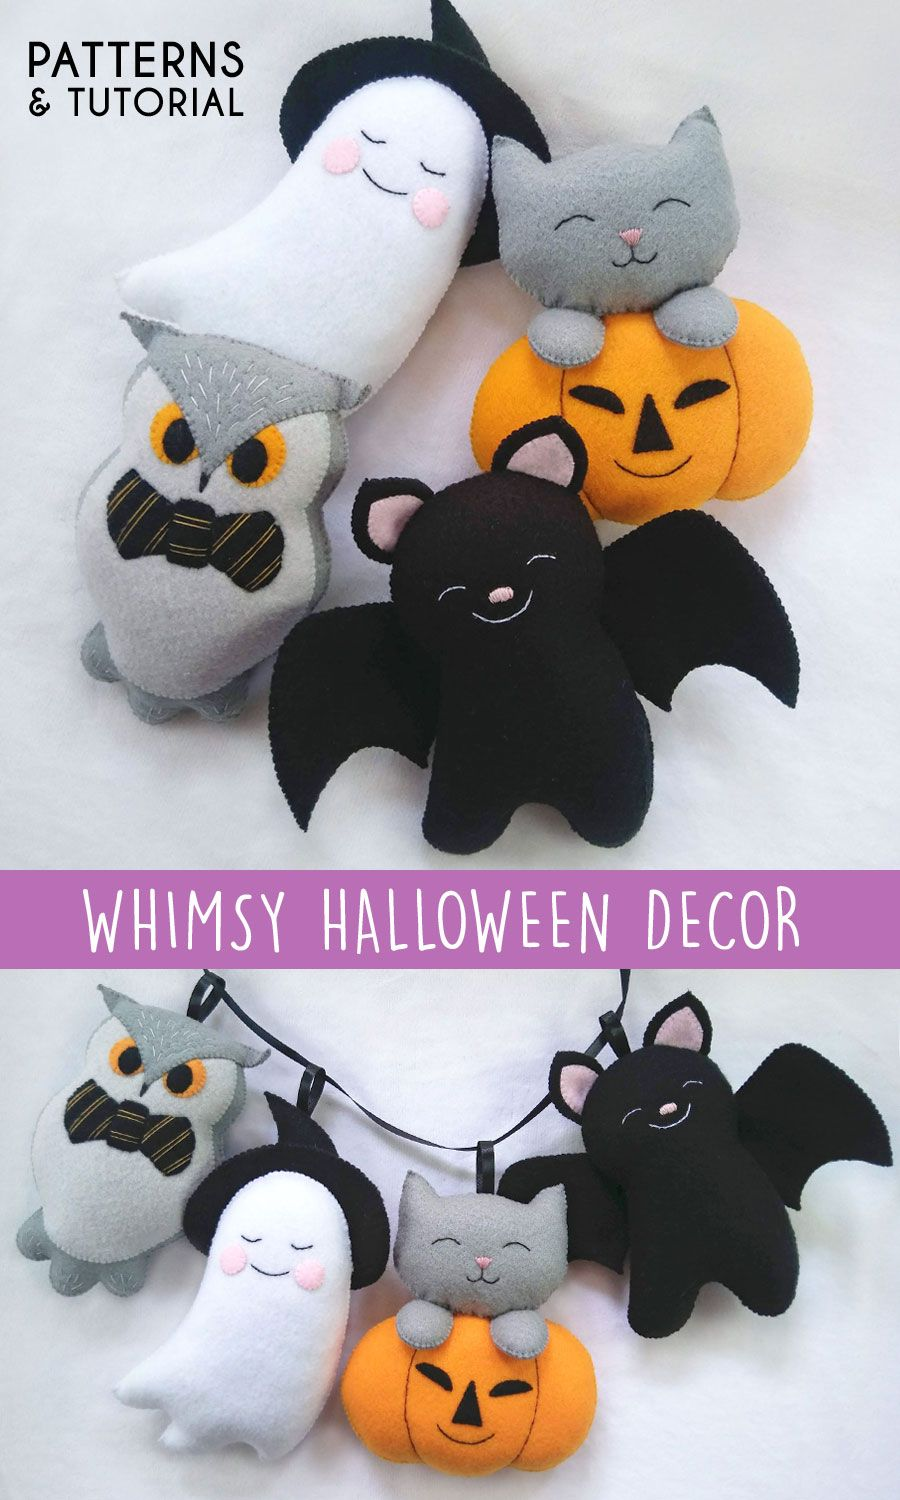 SPECIAL PRICE Whimsy Halloween Decor Set PDF Patterns and